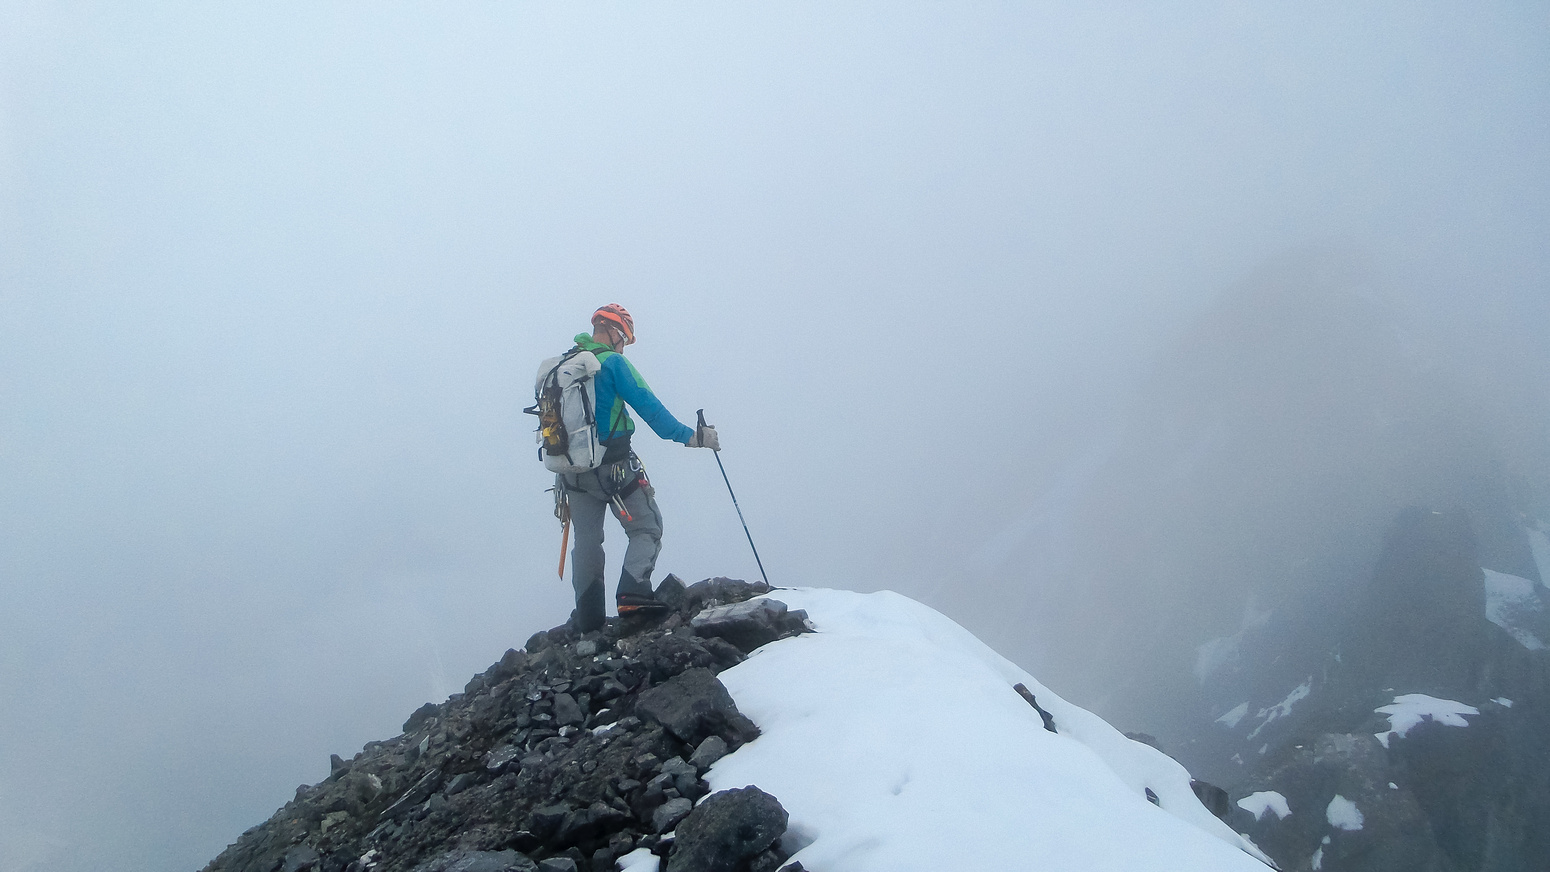 Vern climbs on in the clouds - photo by Steven Song.